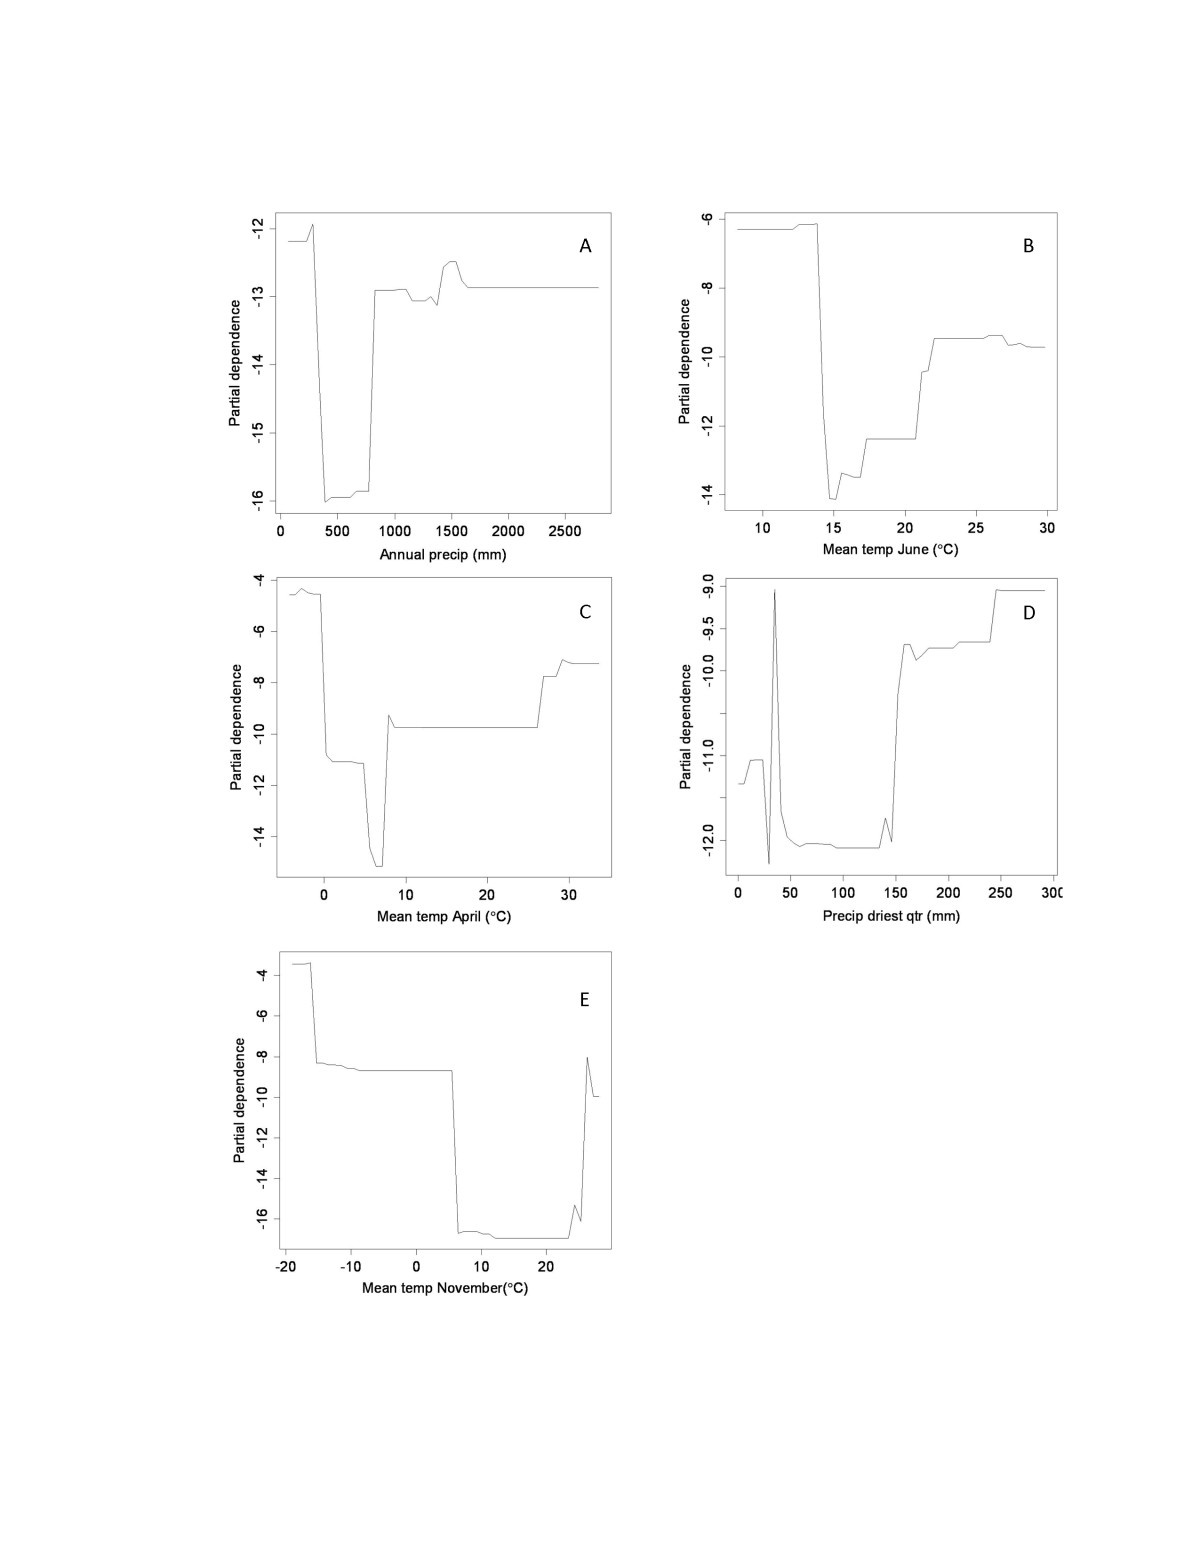 https://static-content.springer.com/image/art%3A10.1186%2F1297-9716-44-42/MediaObjects/13567_2012_Article_251_Fig2_HTML.jpg